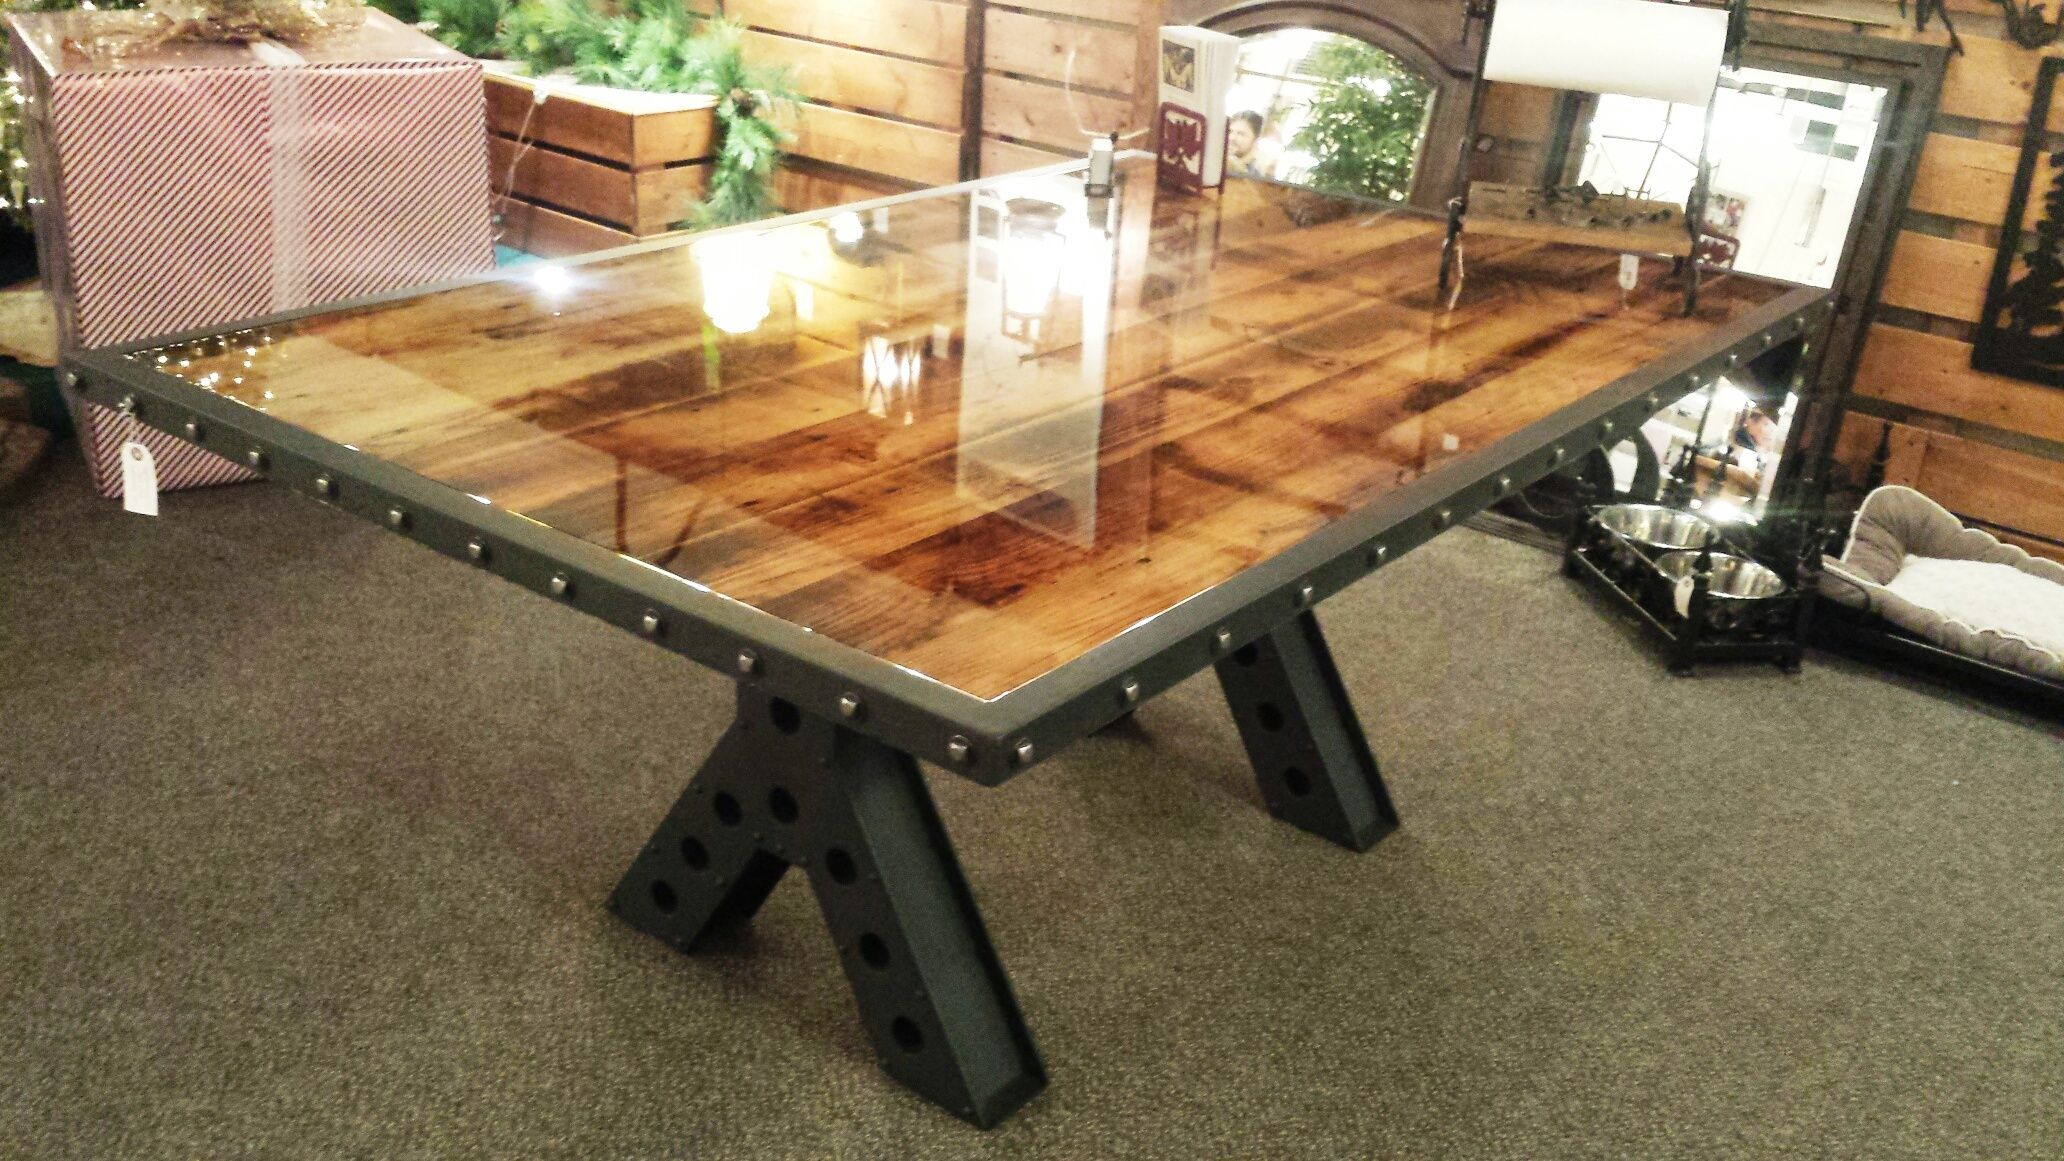 Picture of: Buy Handmade Modern Industrial Rustic 6 Foot Dining Table Conference Table Made Of Metal And Reclaimed Wood Made To Order From Lazy K Metalworks Custommade Com